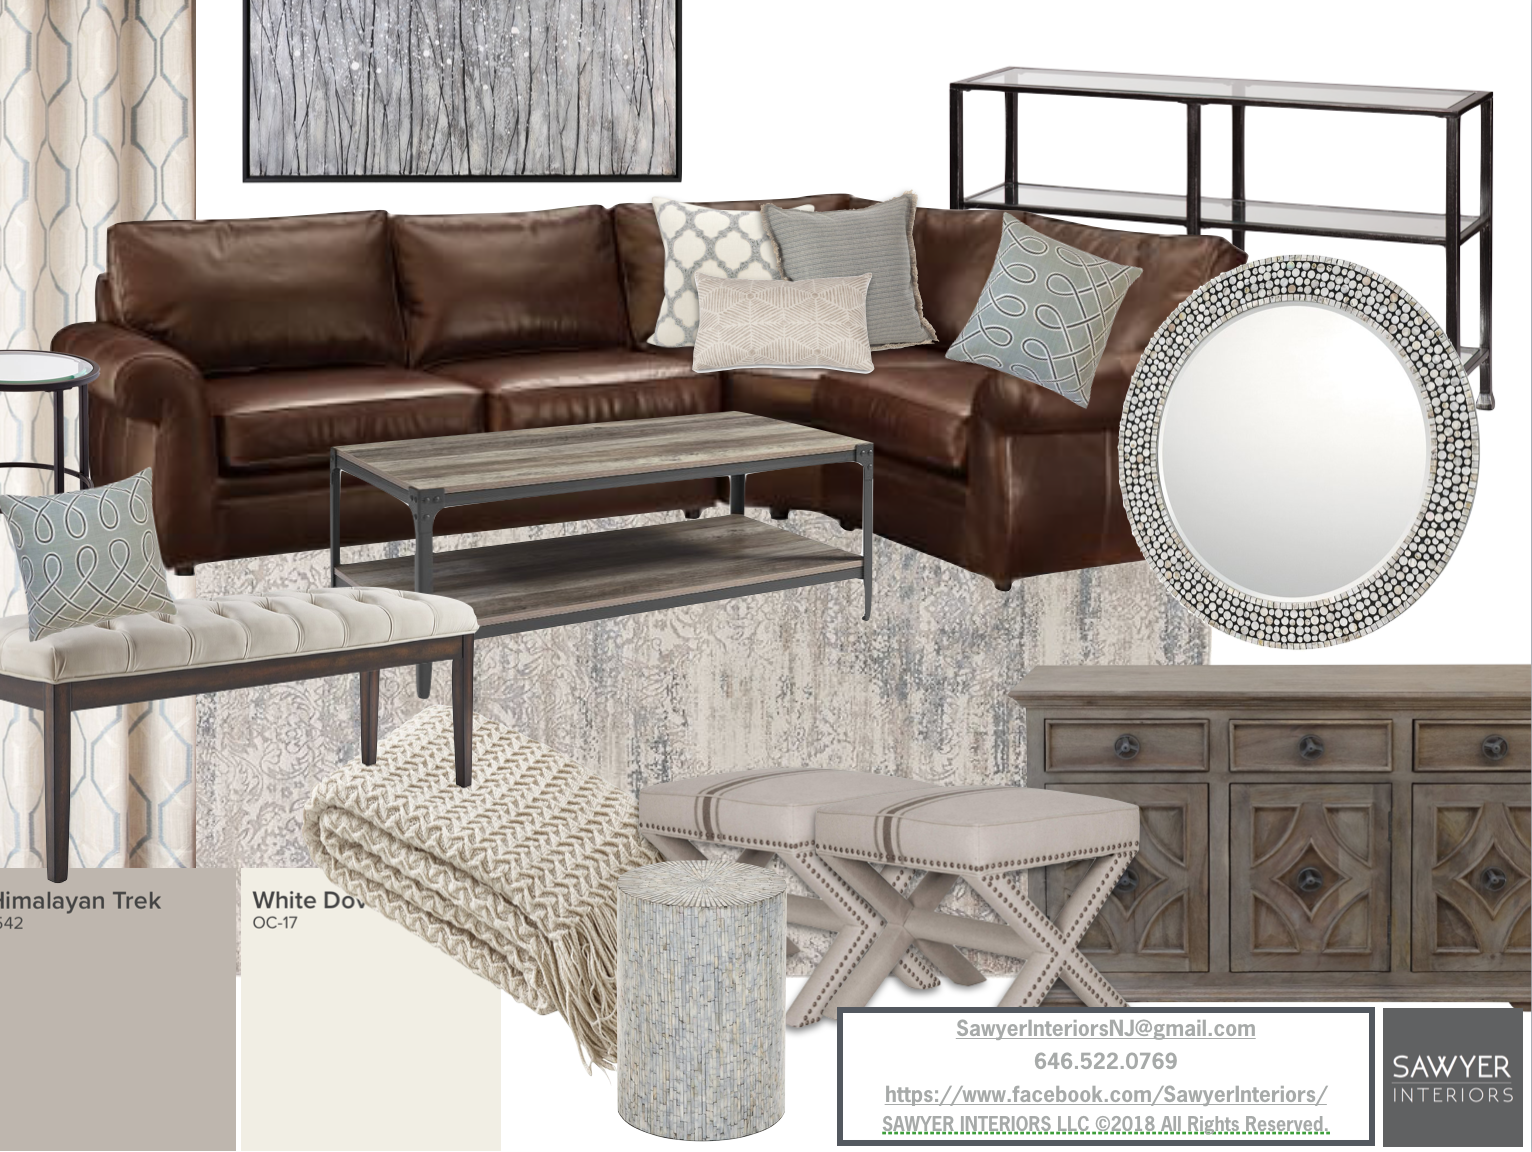 Relaxing Neutrals Family Room Wayfair Overstock Pottery Barn Joss Main Birch Lane Neutral Family Room Home Decor Family Room